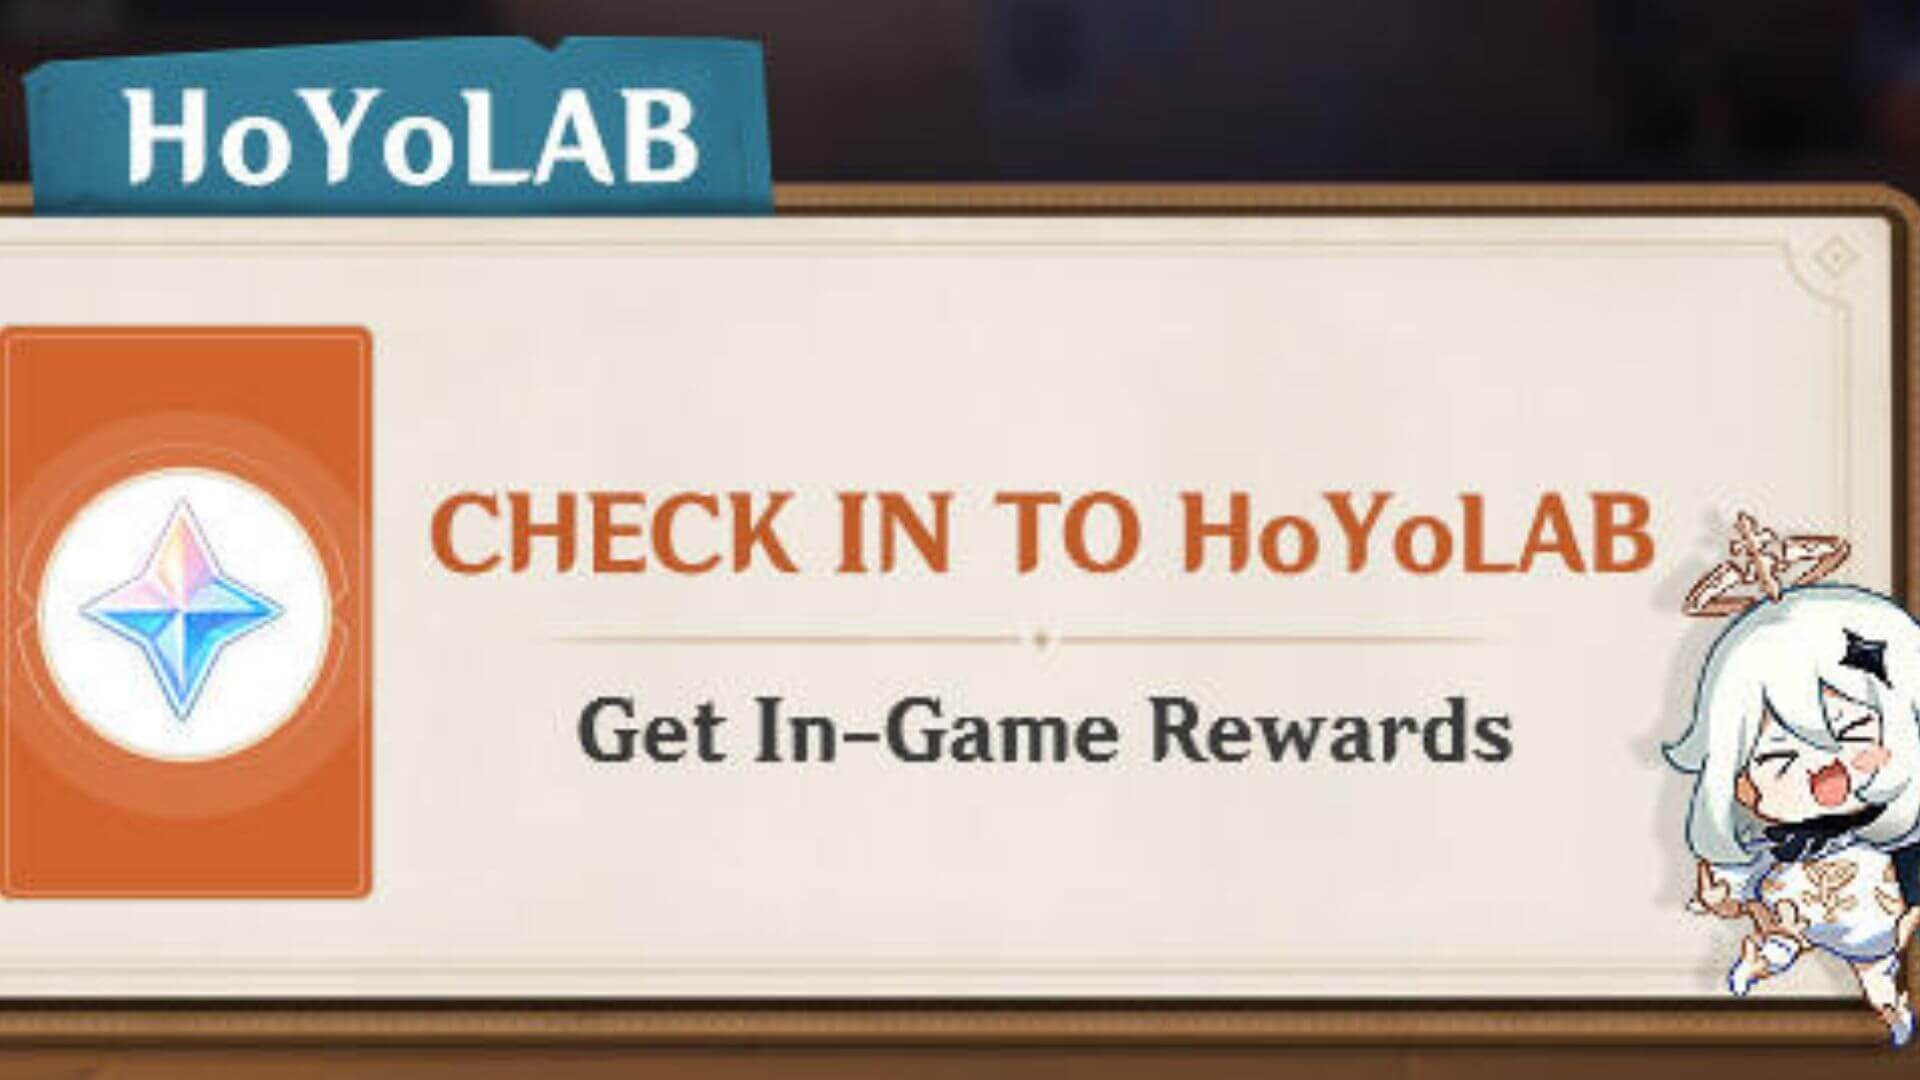 Genshin Impact Guide - How To Check-In and Claim Rewards to HoYoLAB